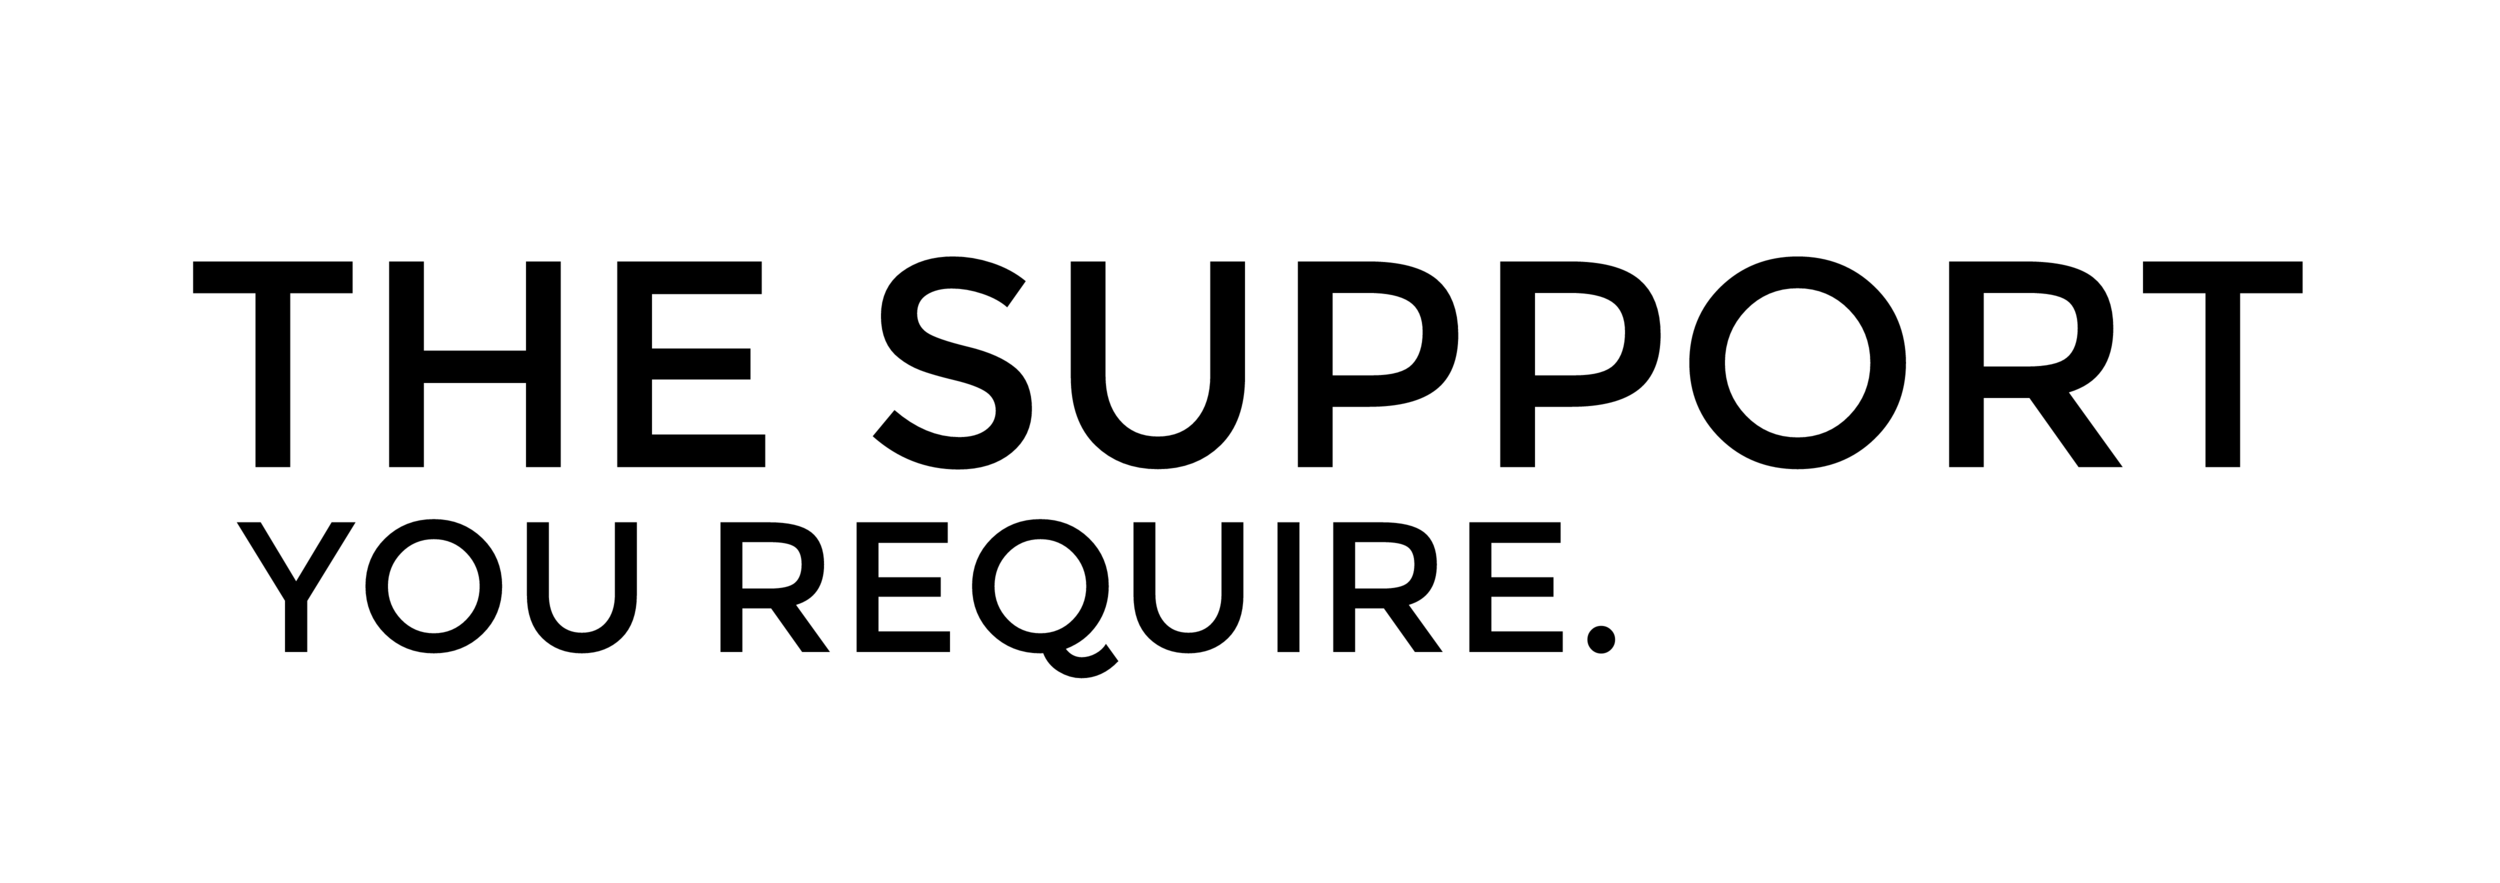 THE SUPPORT-logo-black.png